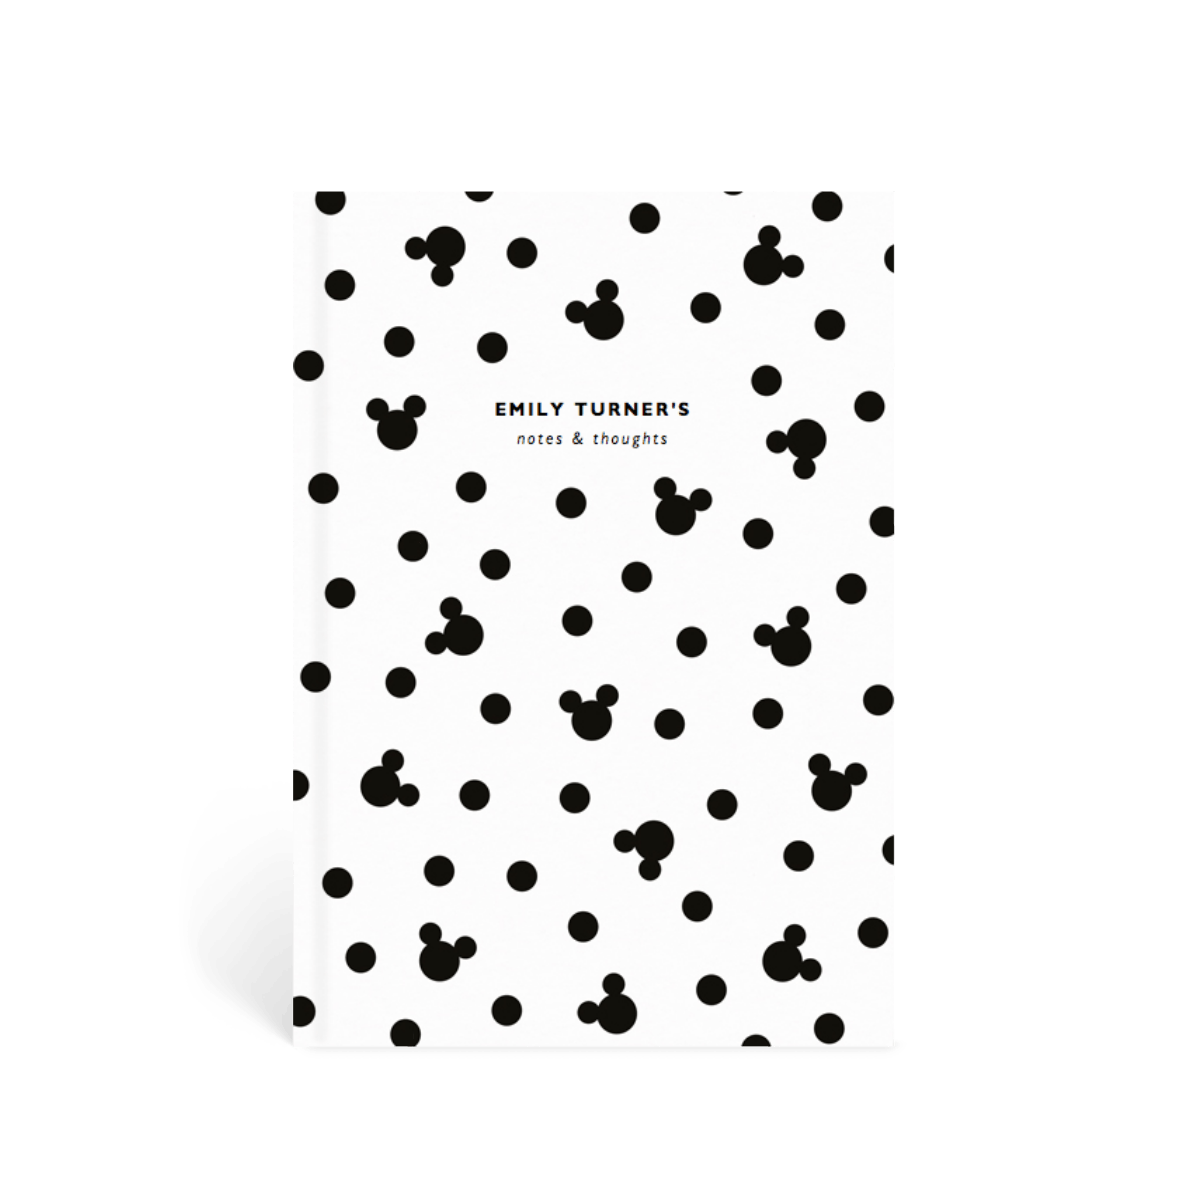 Https%3a%2f%2fwww.papier.com%2fproduct image%2f51340%2f25%2fpolka dot mickey mouse 12573 vorderseite 1540477873.png?ixlib=rb 1.1